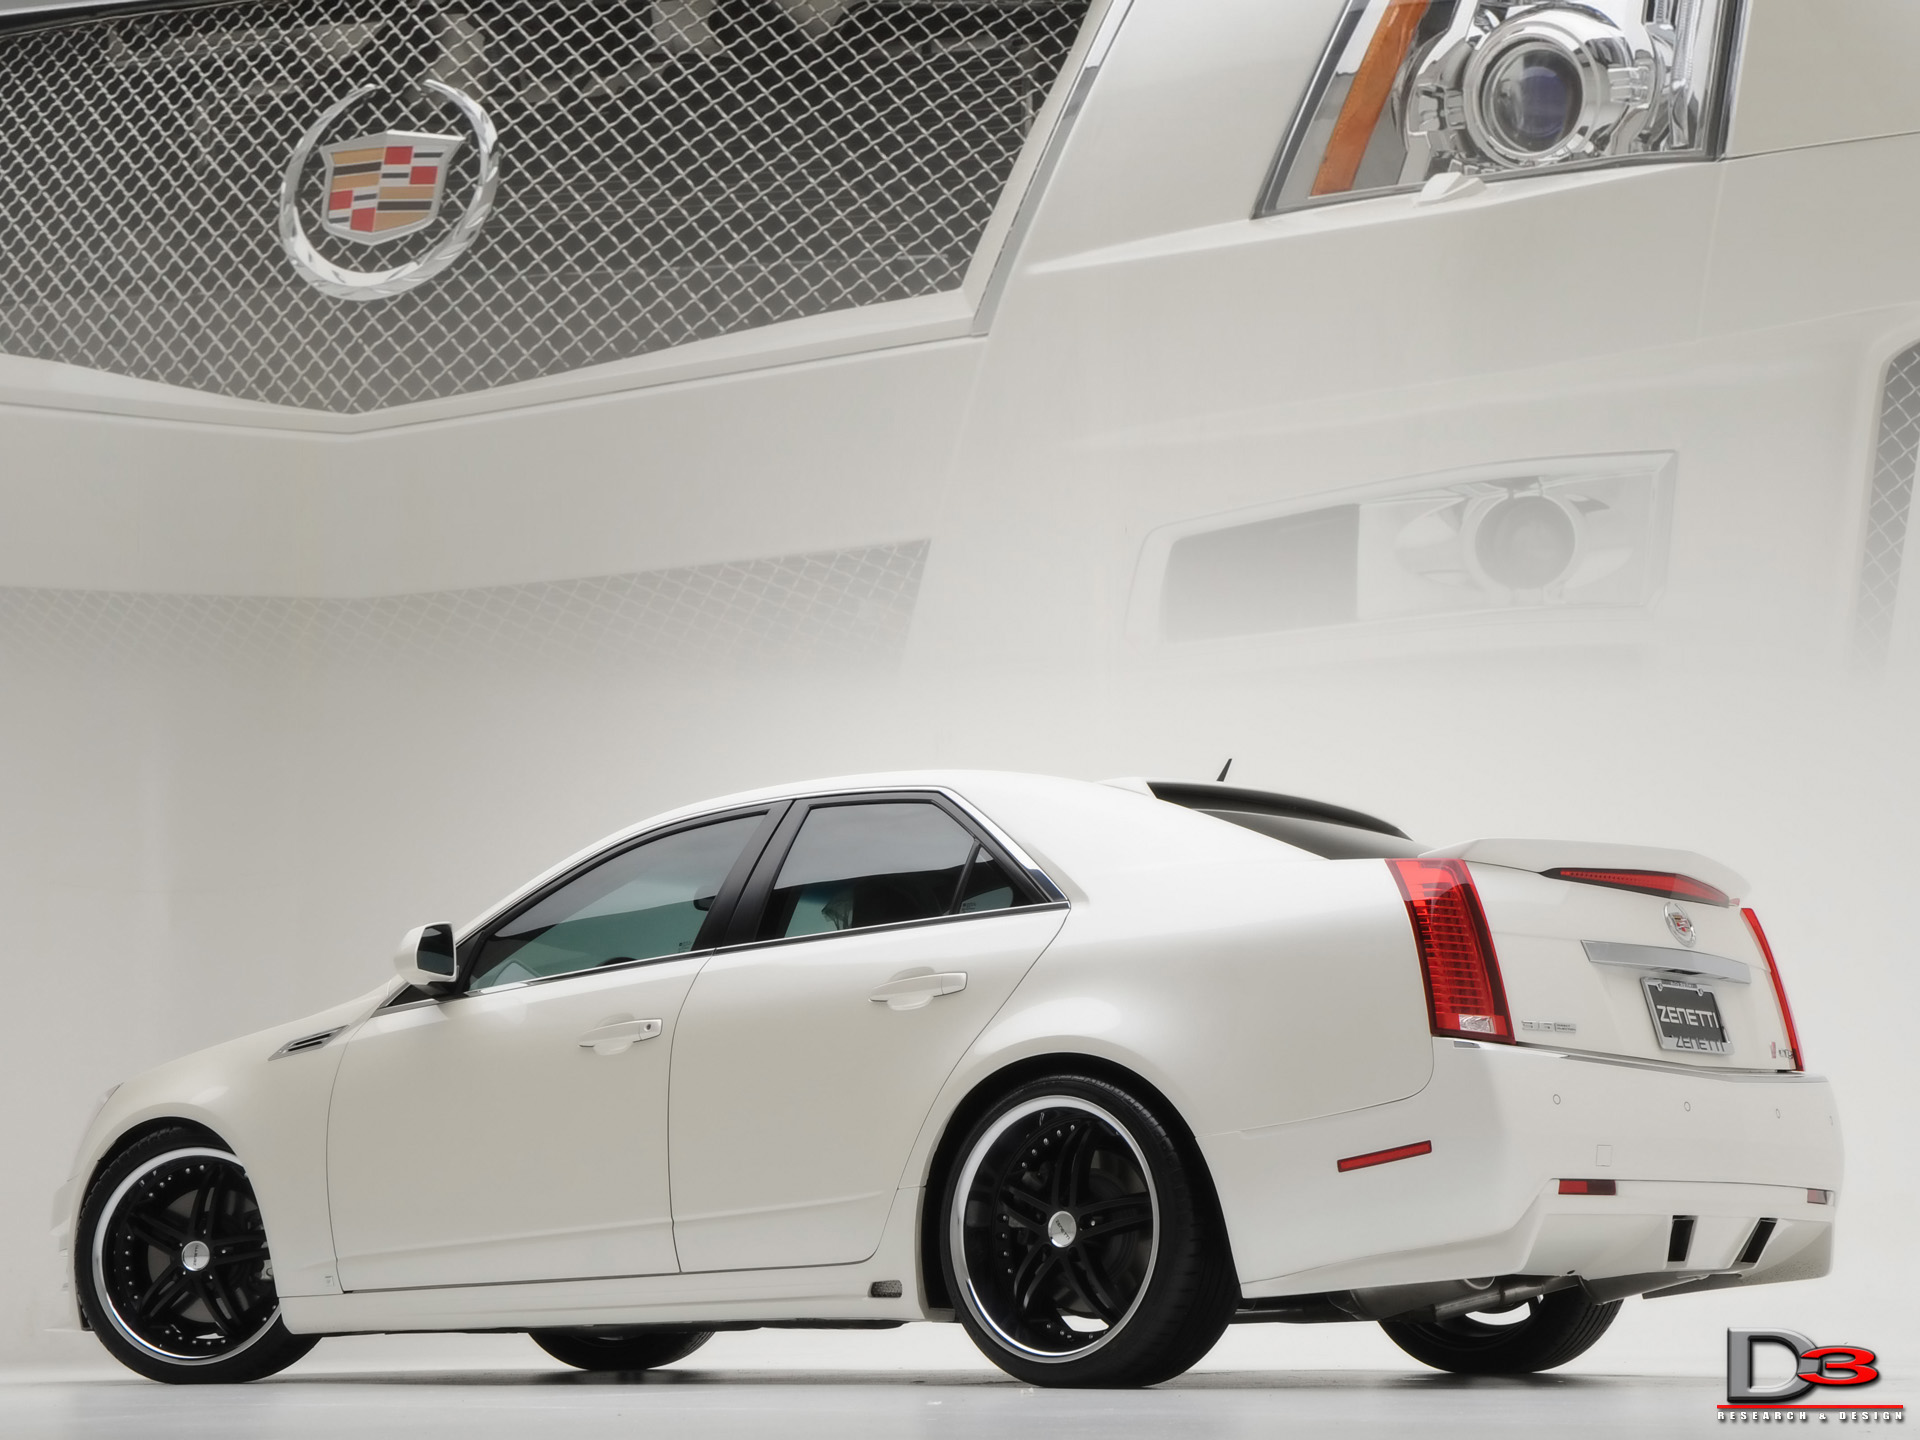 D3 Cadillac CTS picture # 54315 | D3 photo gallery | CarsBase.com